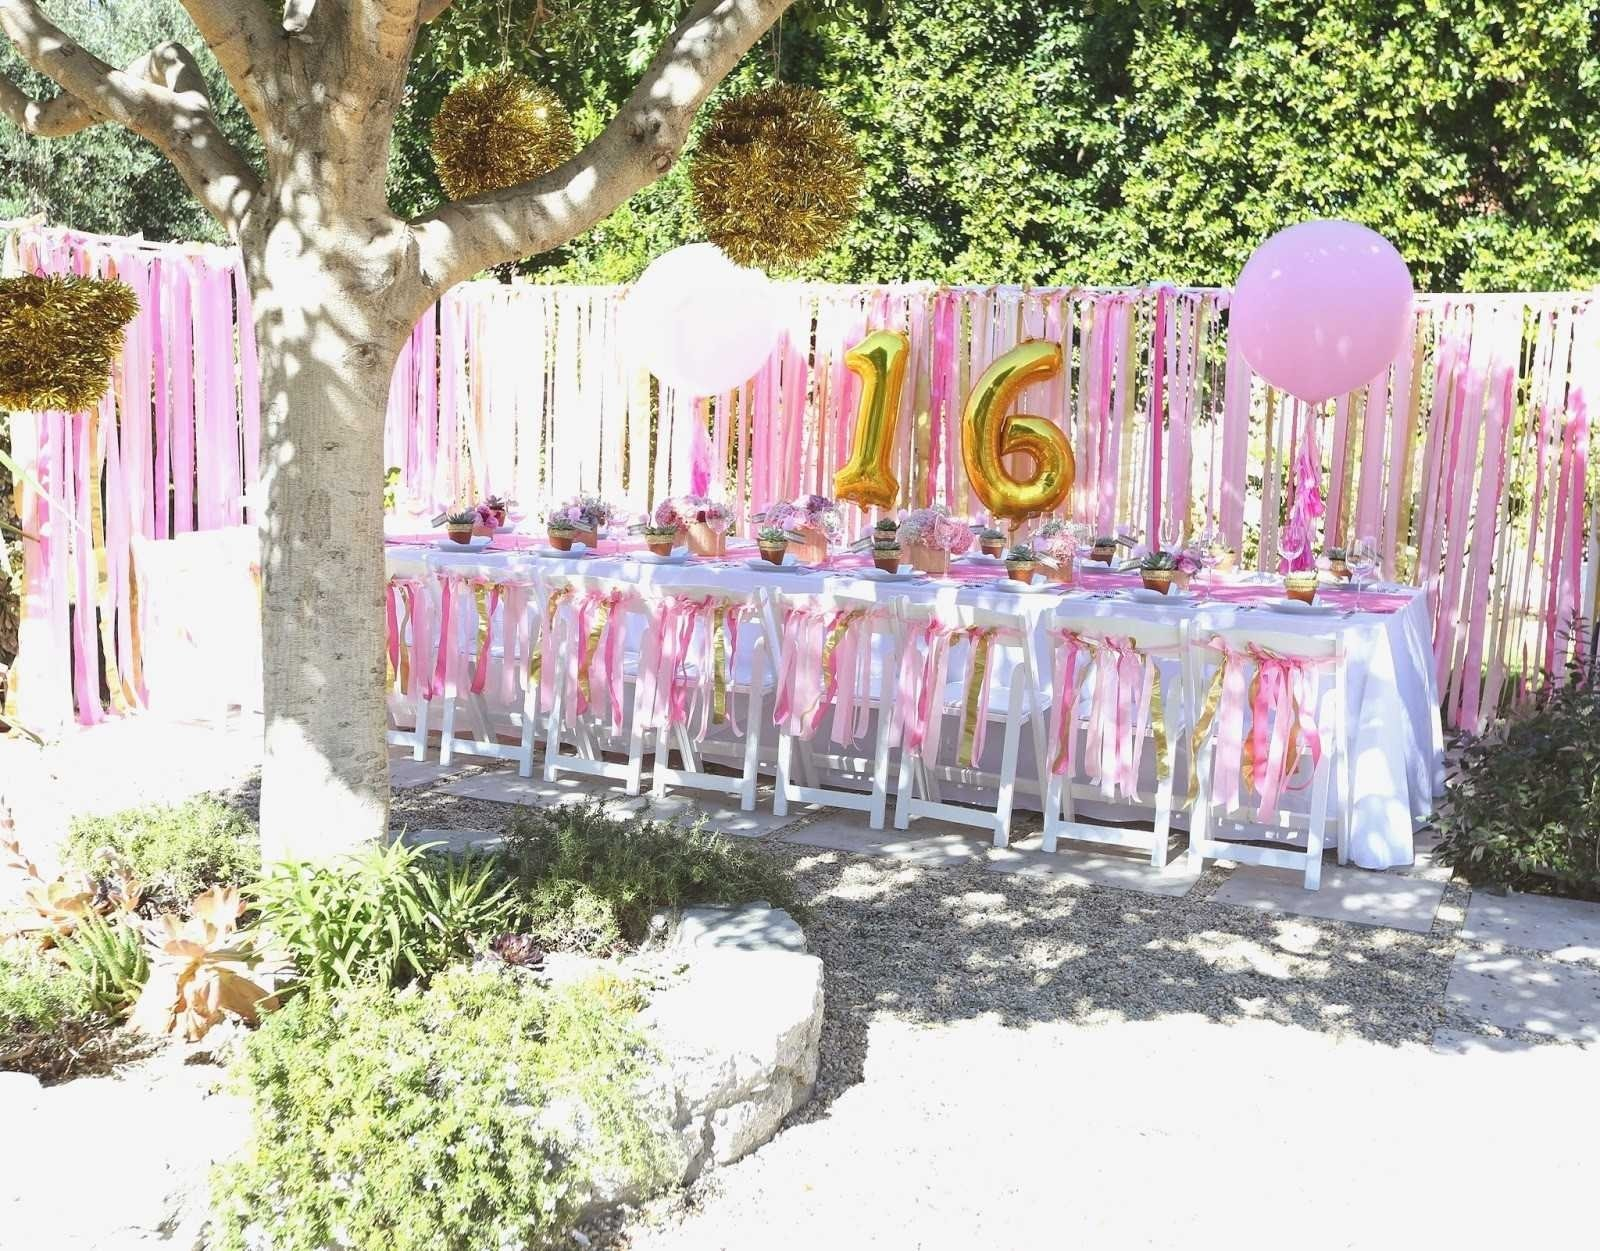 10 Cute Sweet 16 Party Ideas At Home sweet sixteen backyard party ideas best of the coop sweet 16 party 1 2020